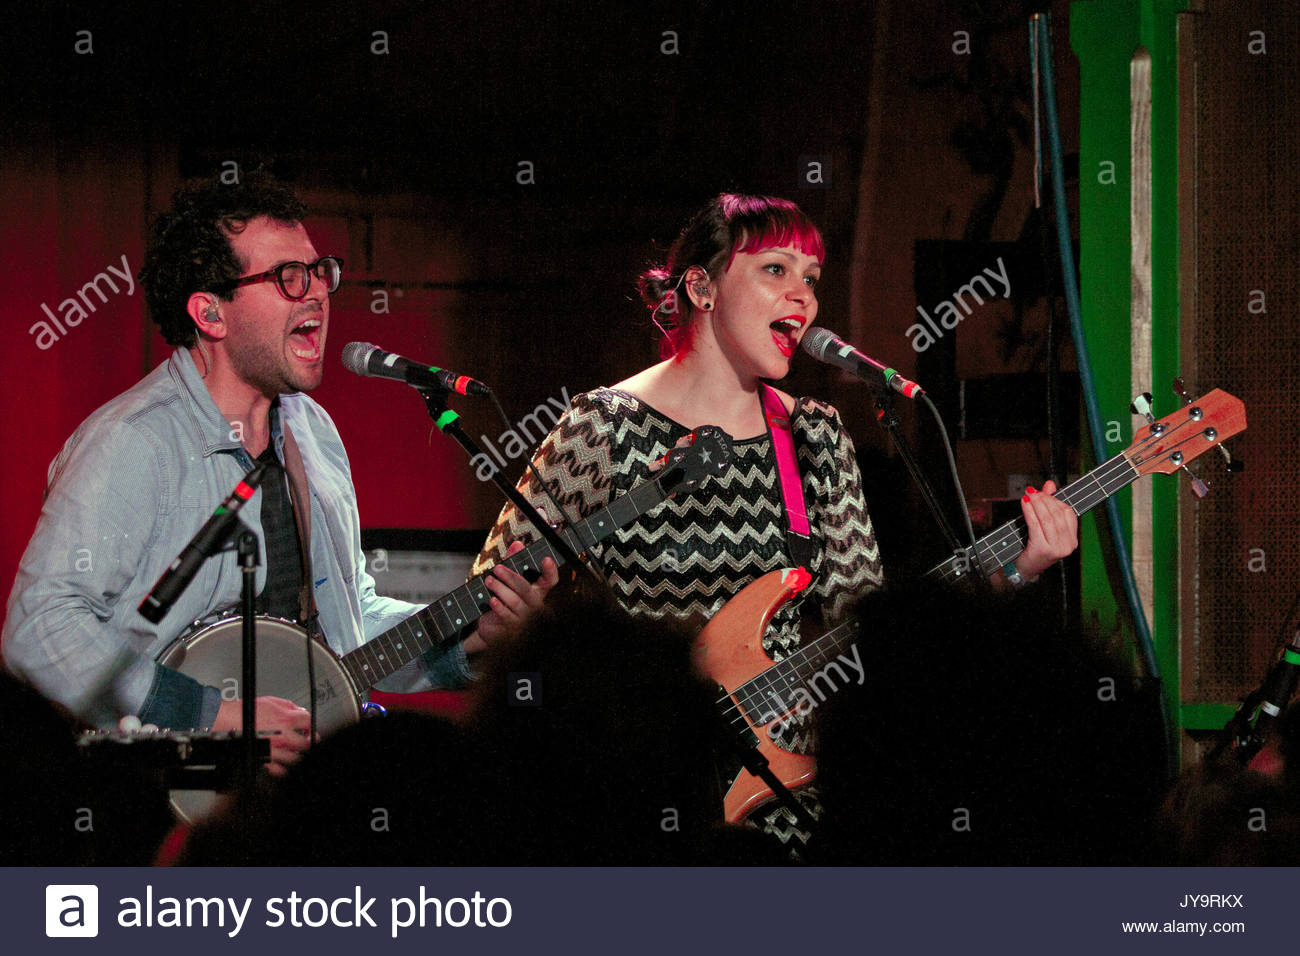 Freelance Whales. Indie rock band Freelance Whales played a small club in Seattle. The band headed up by Judah Dadone Doris Cellar and Chuck Criss ...  sc 1 st  Alamy & Freelance Whales. Indie rock band Freelance Whales played a small ...